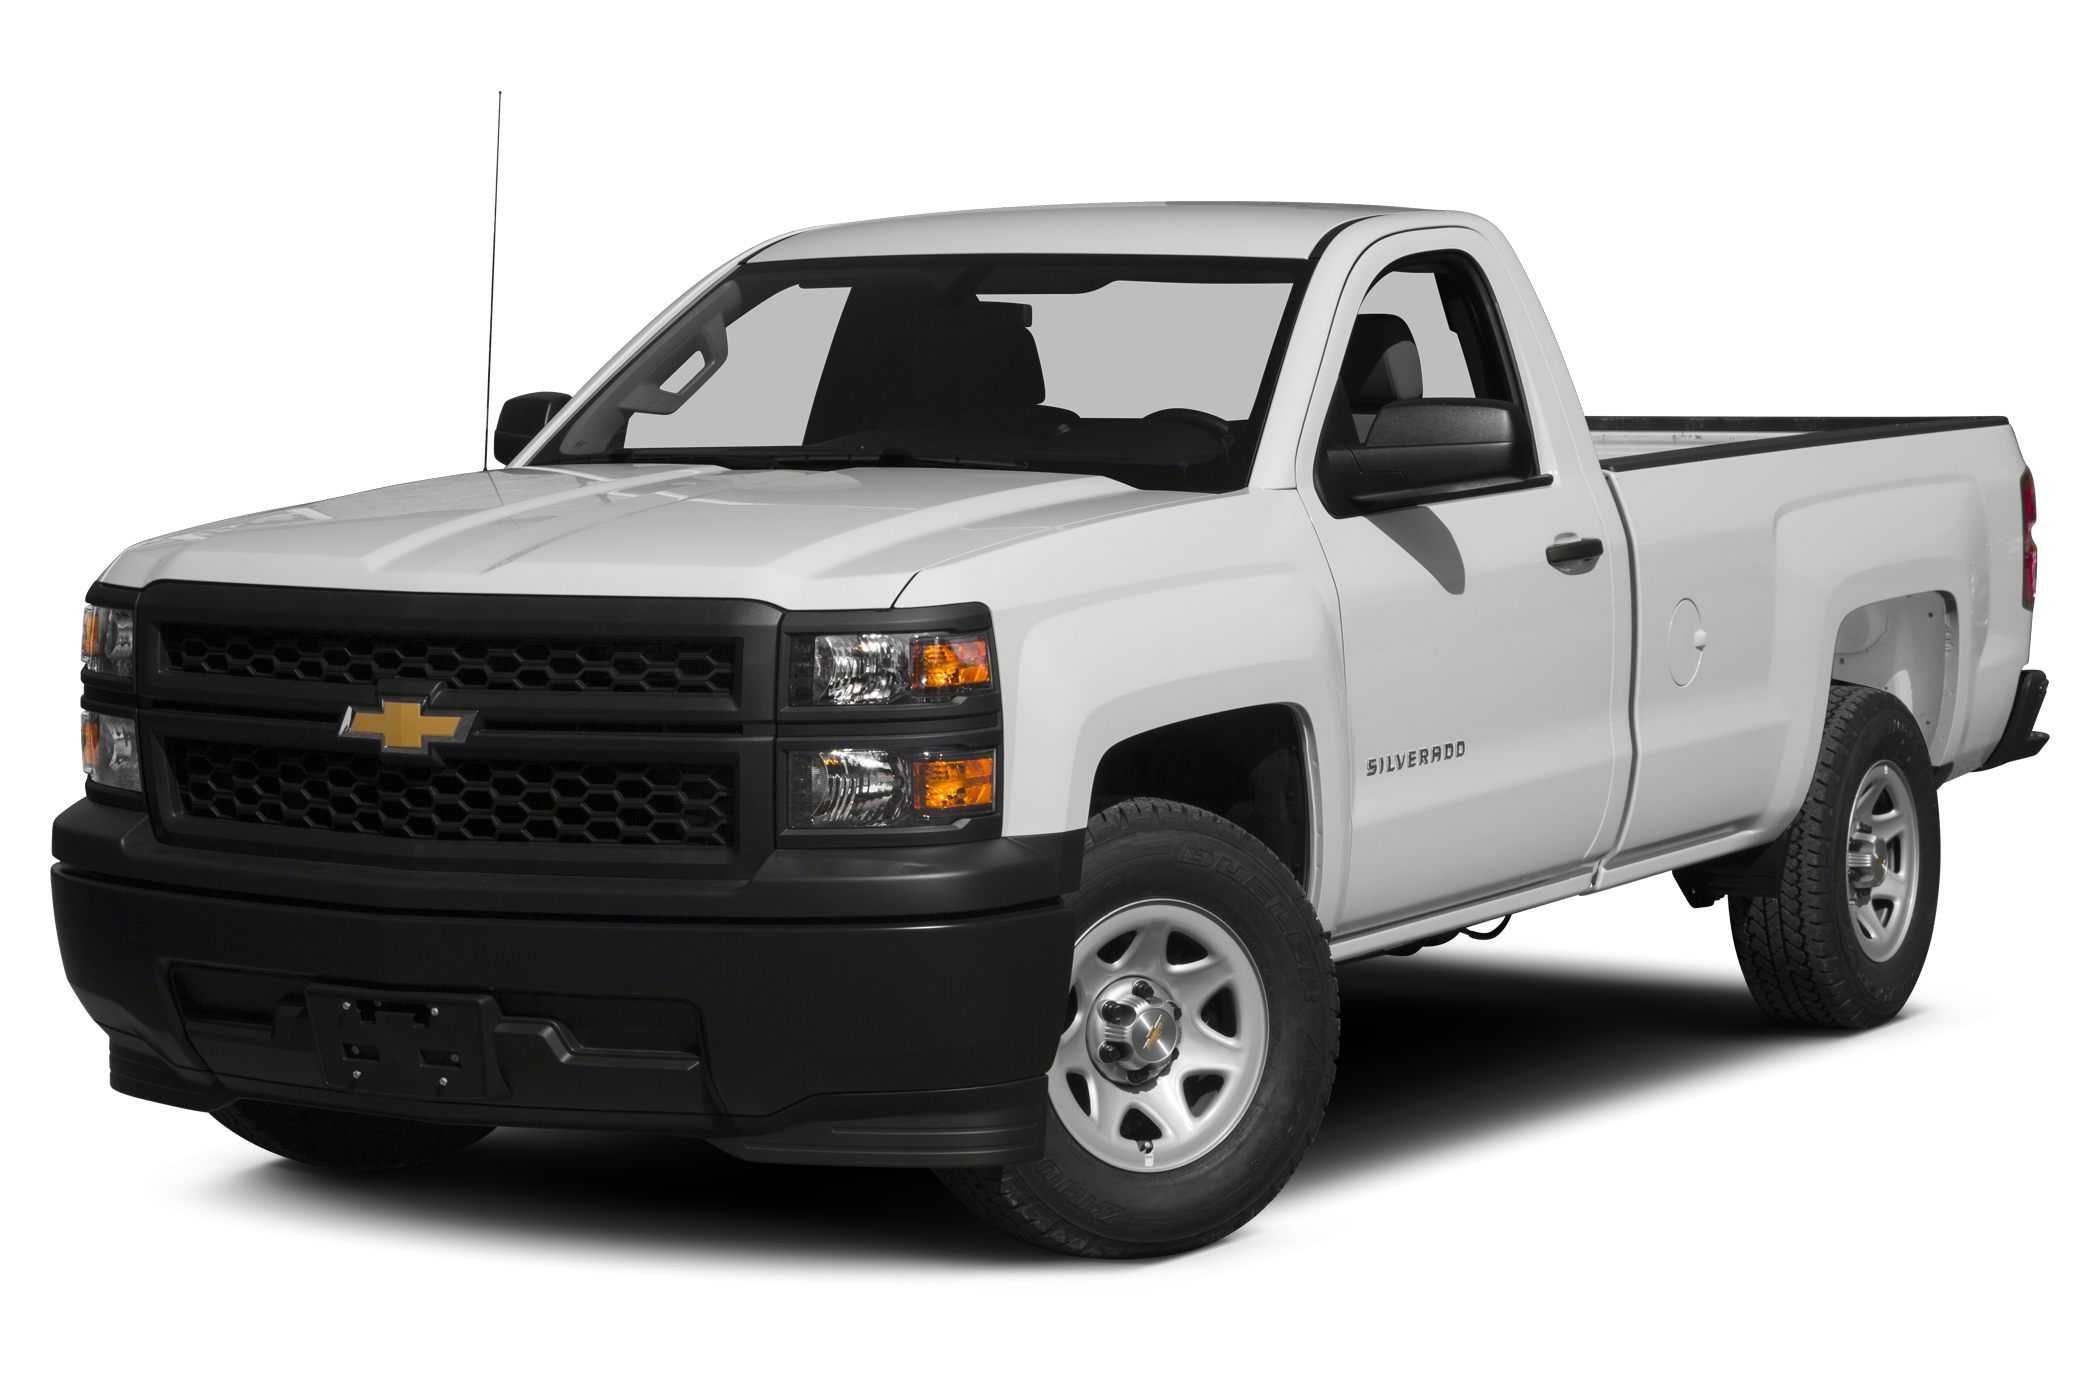 2014 Chevrolet Silverado 1500 Work Truck 1WT Crew Cab Pickup for sale in Andover for $39,560 with 0 miles